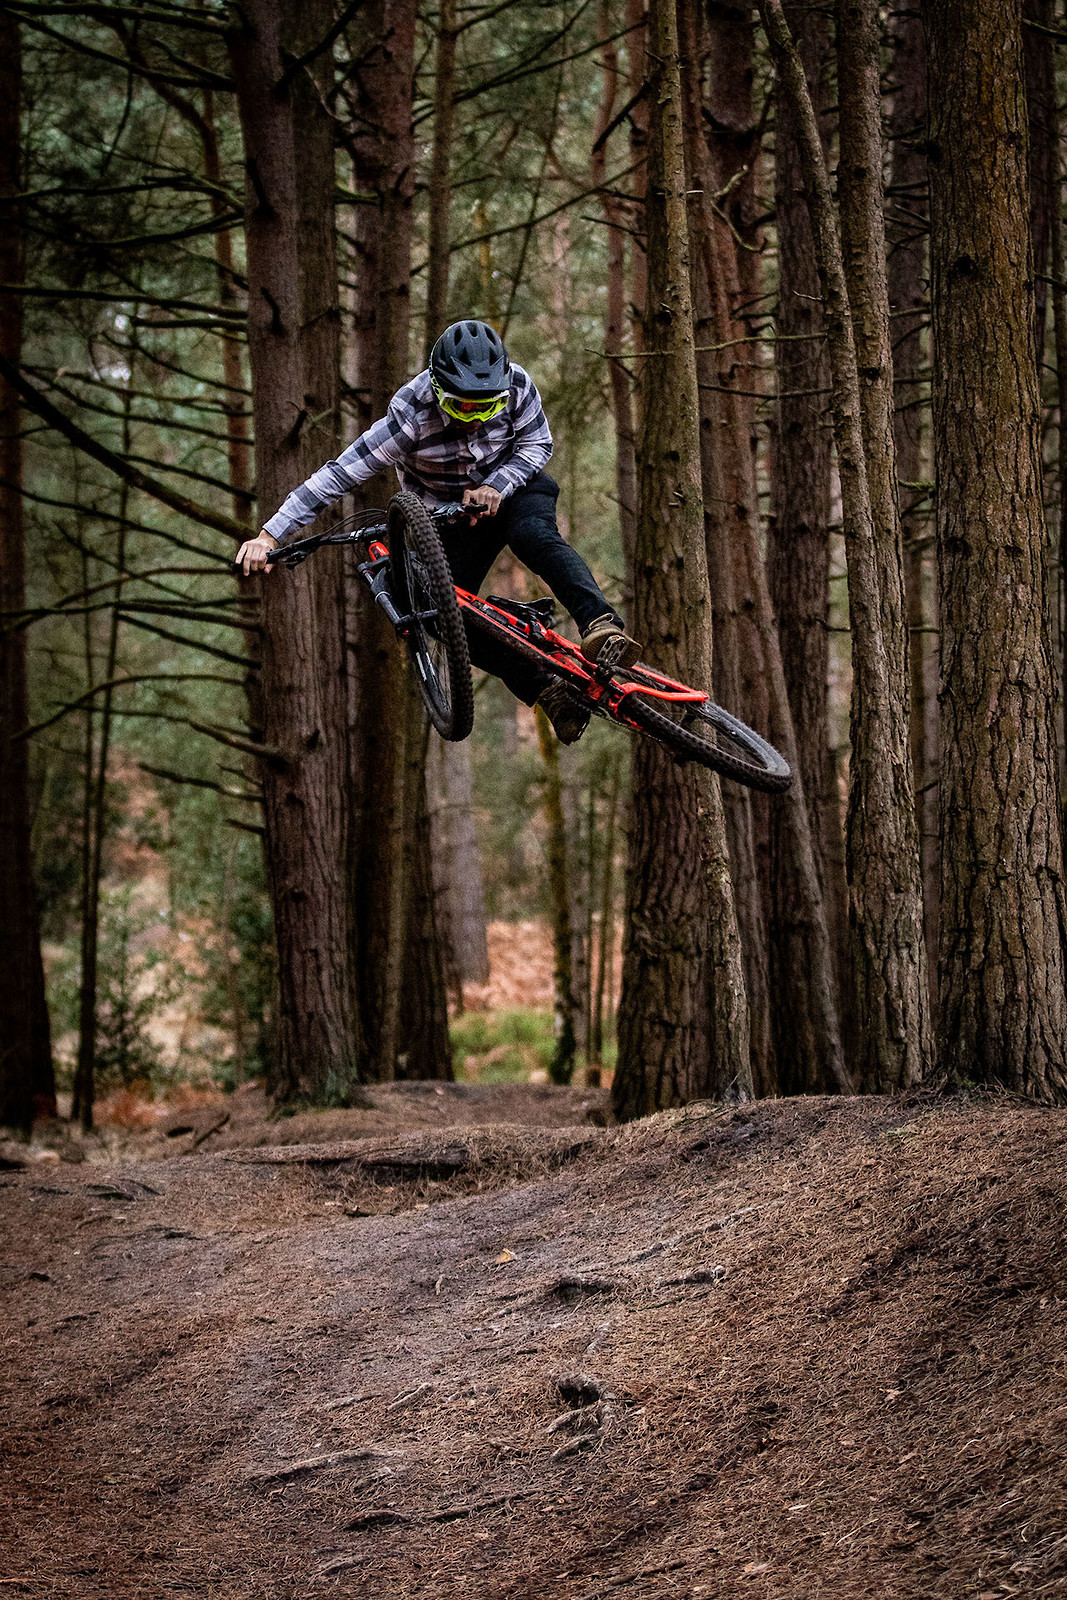 Half Table Half Whip thing - cagreenwood - Mountain Biking Pictures - Vital MTB